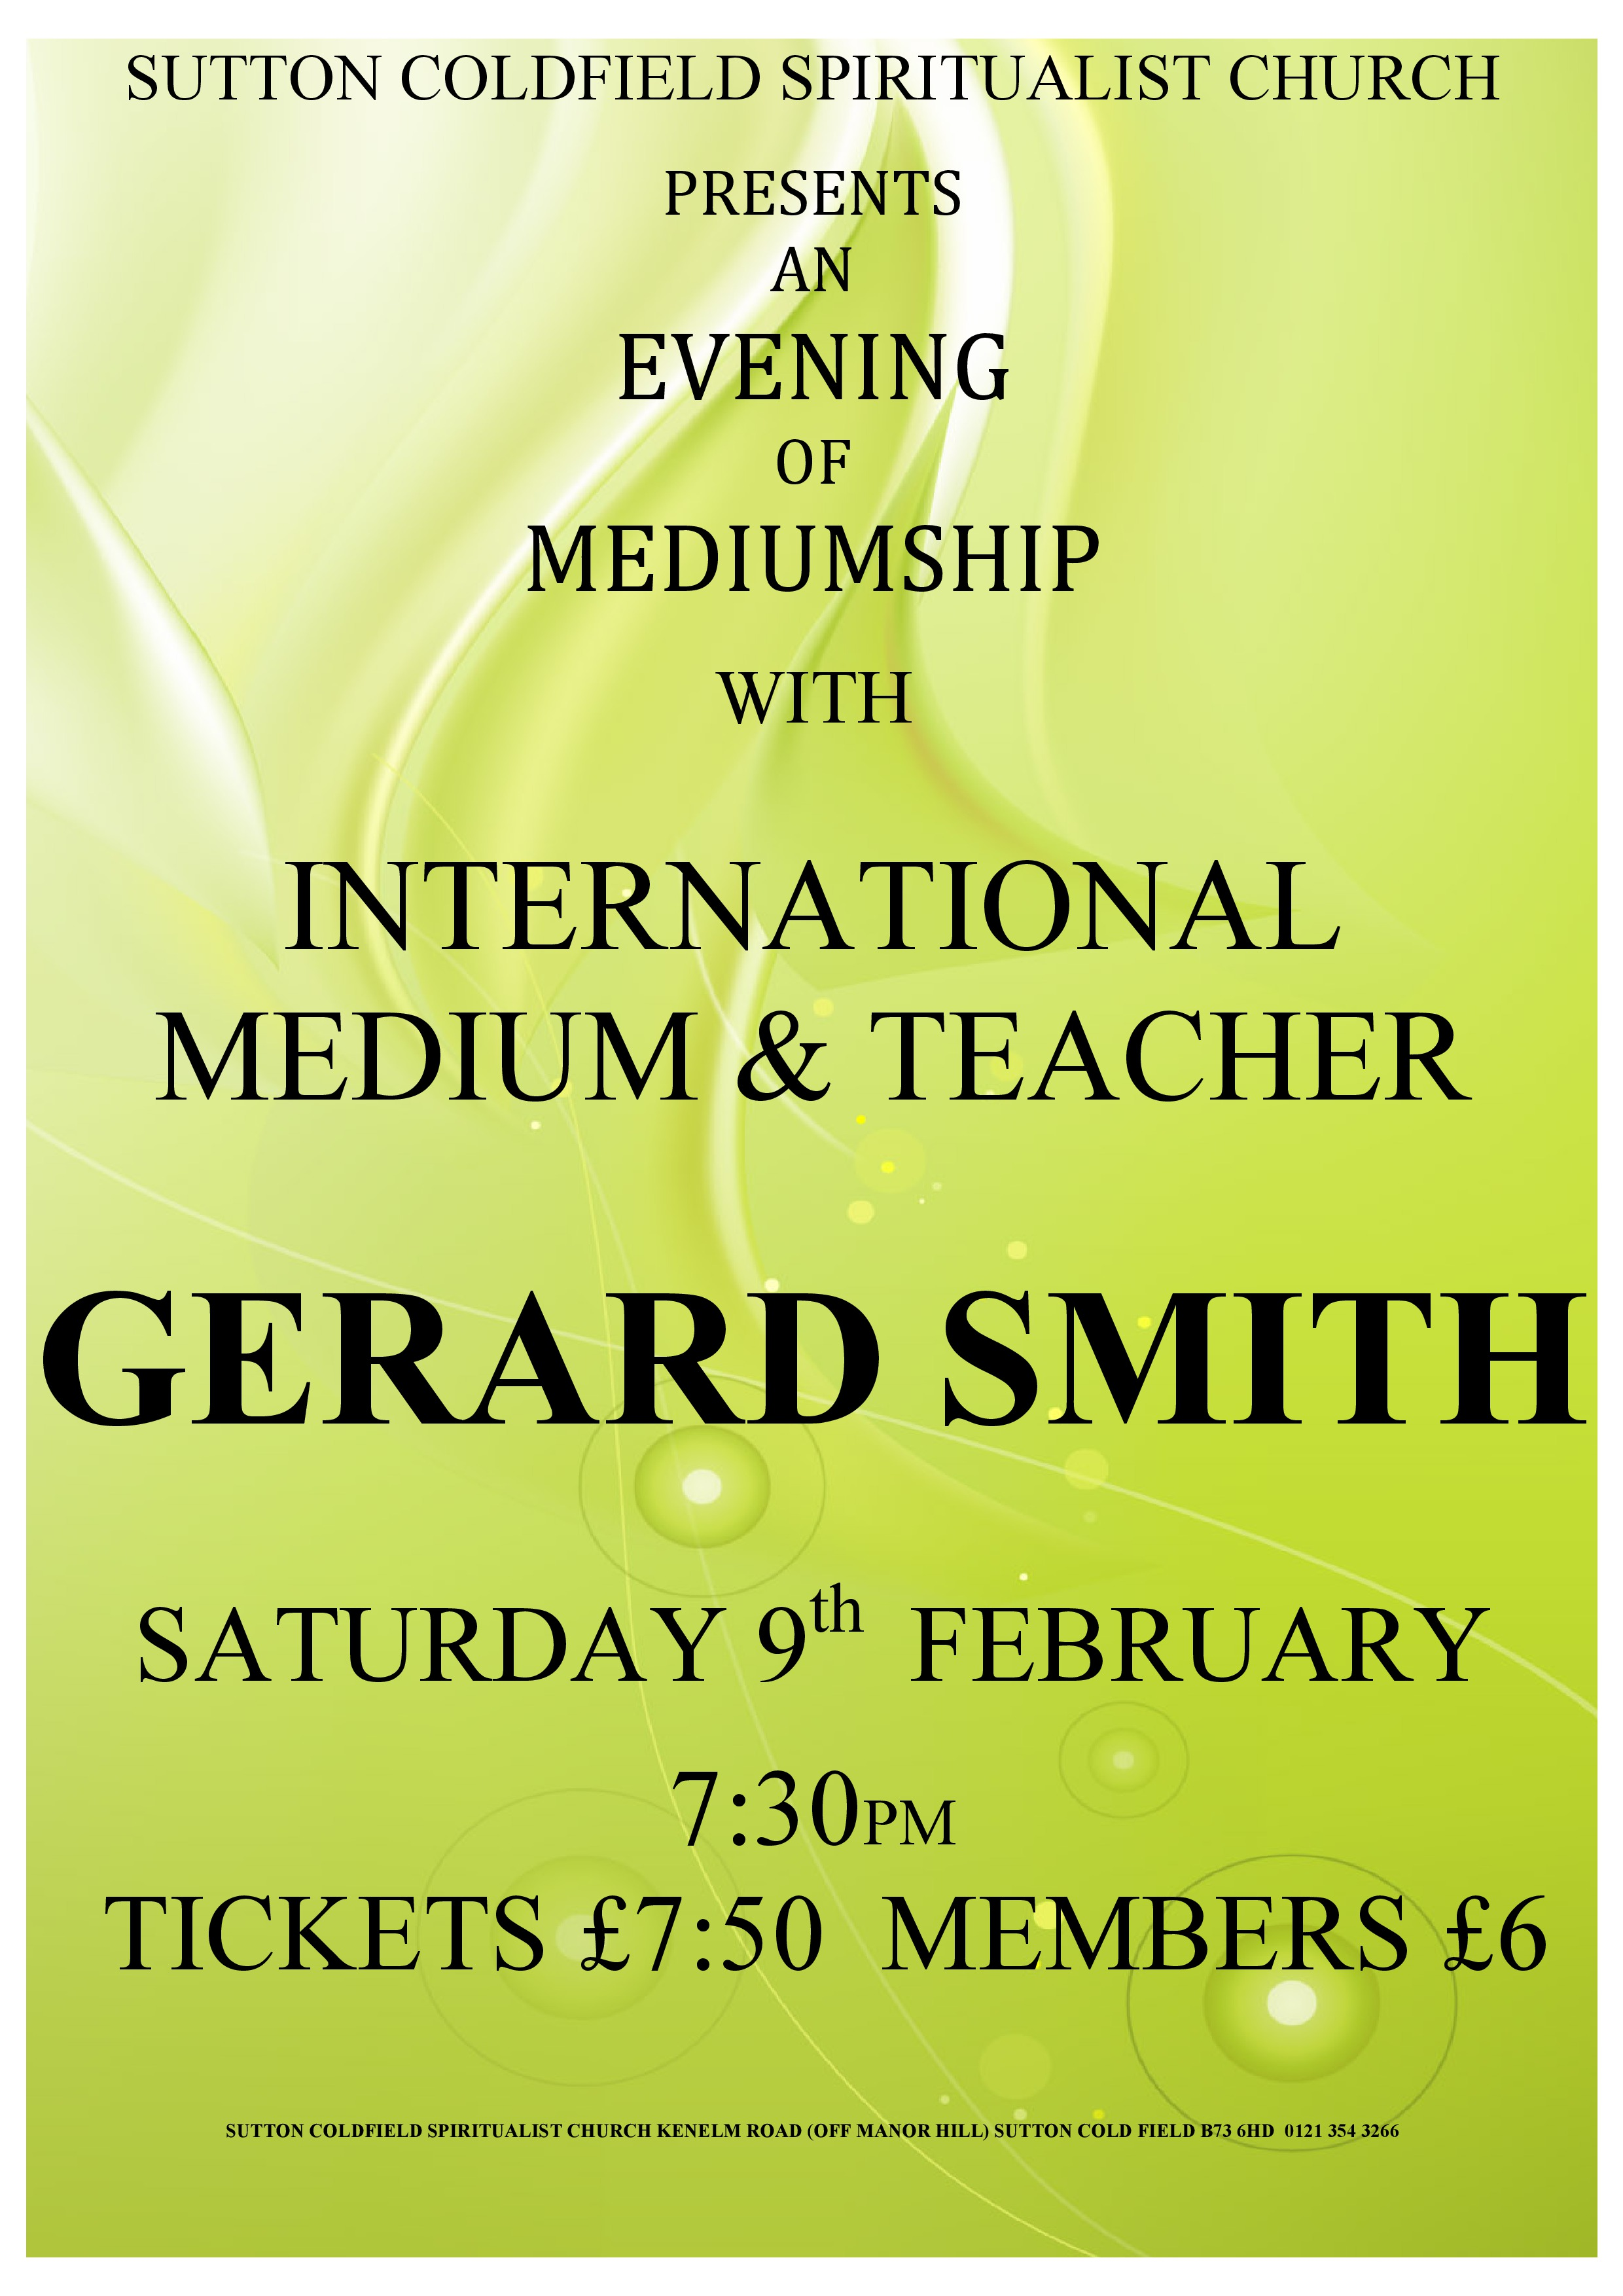 gerard smith poster-page-0